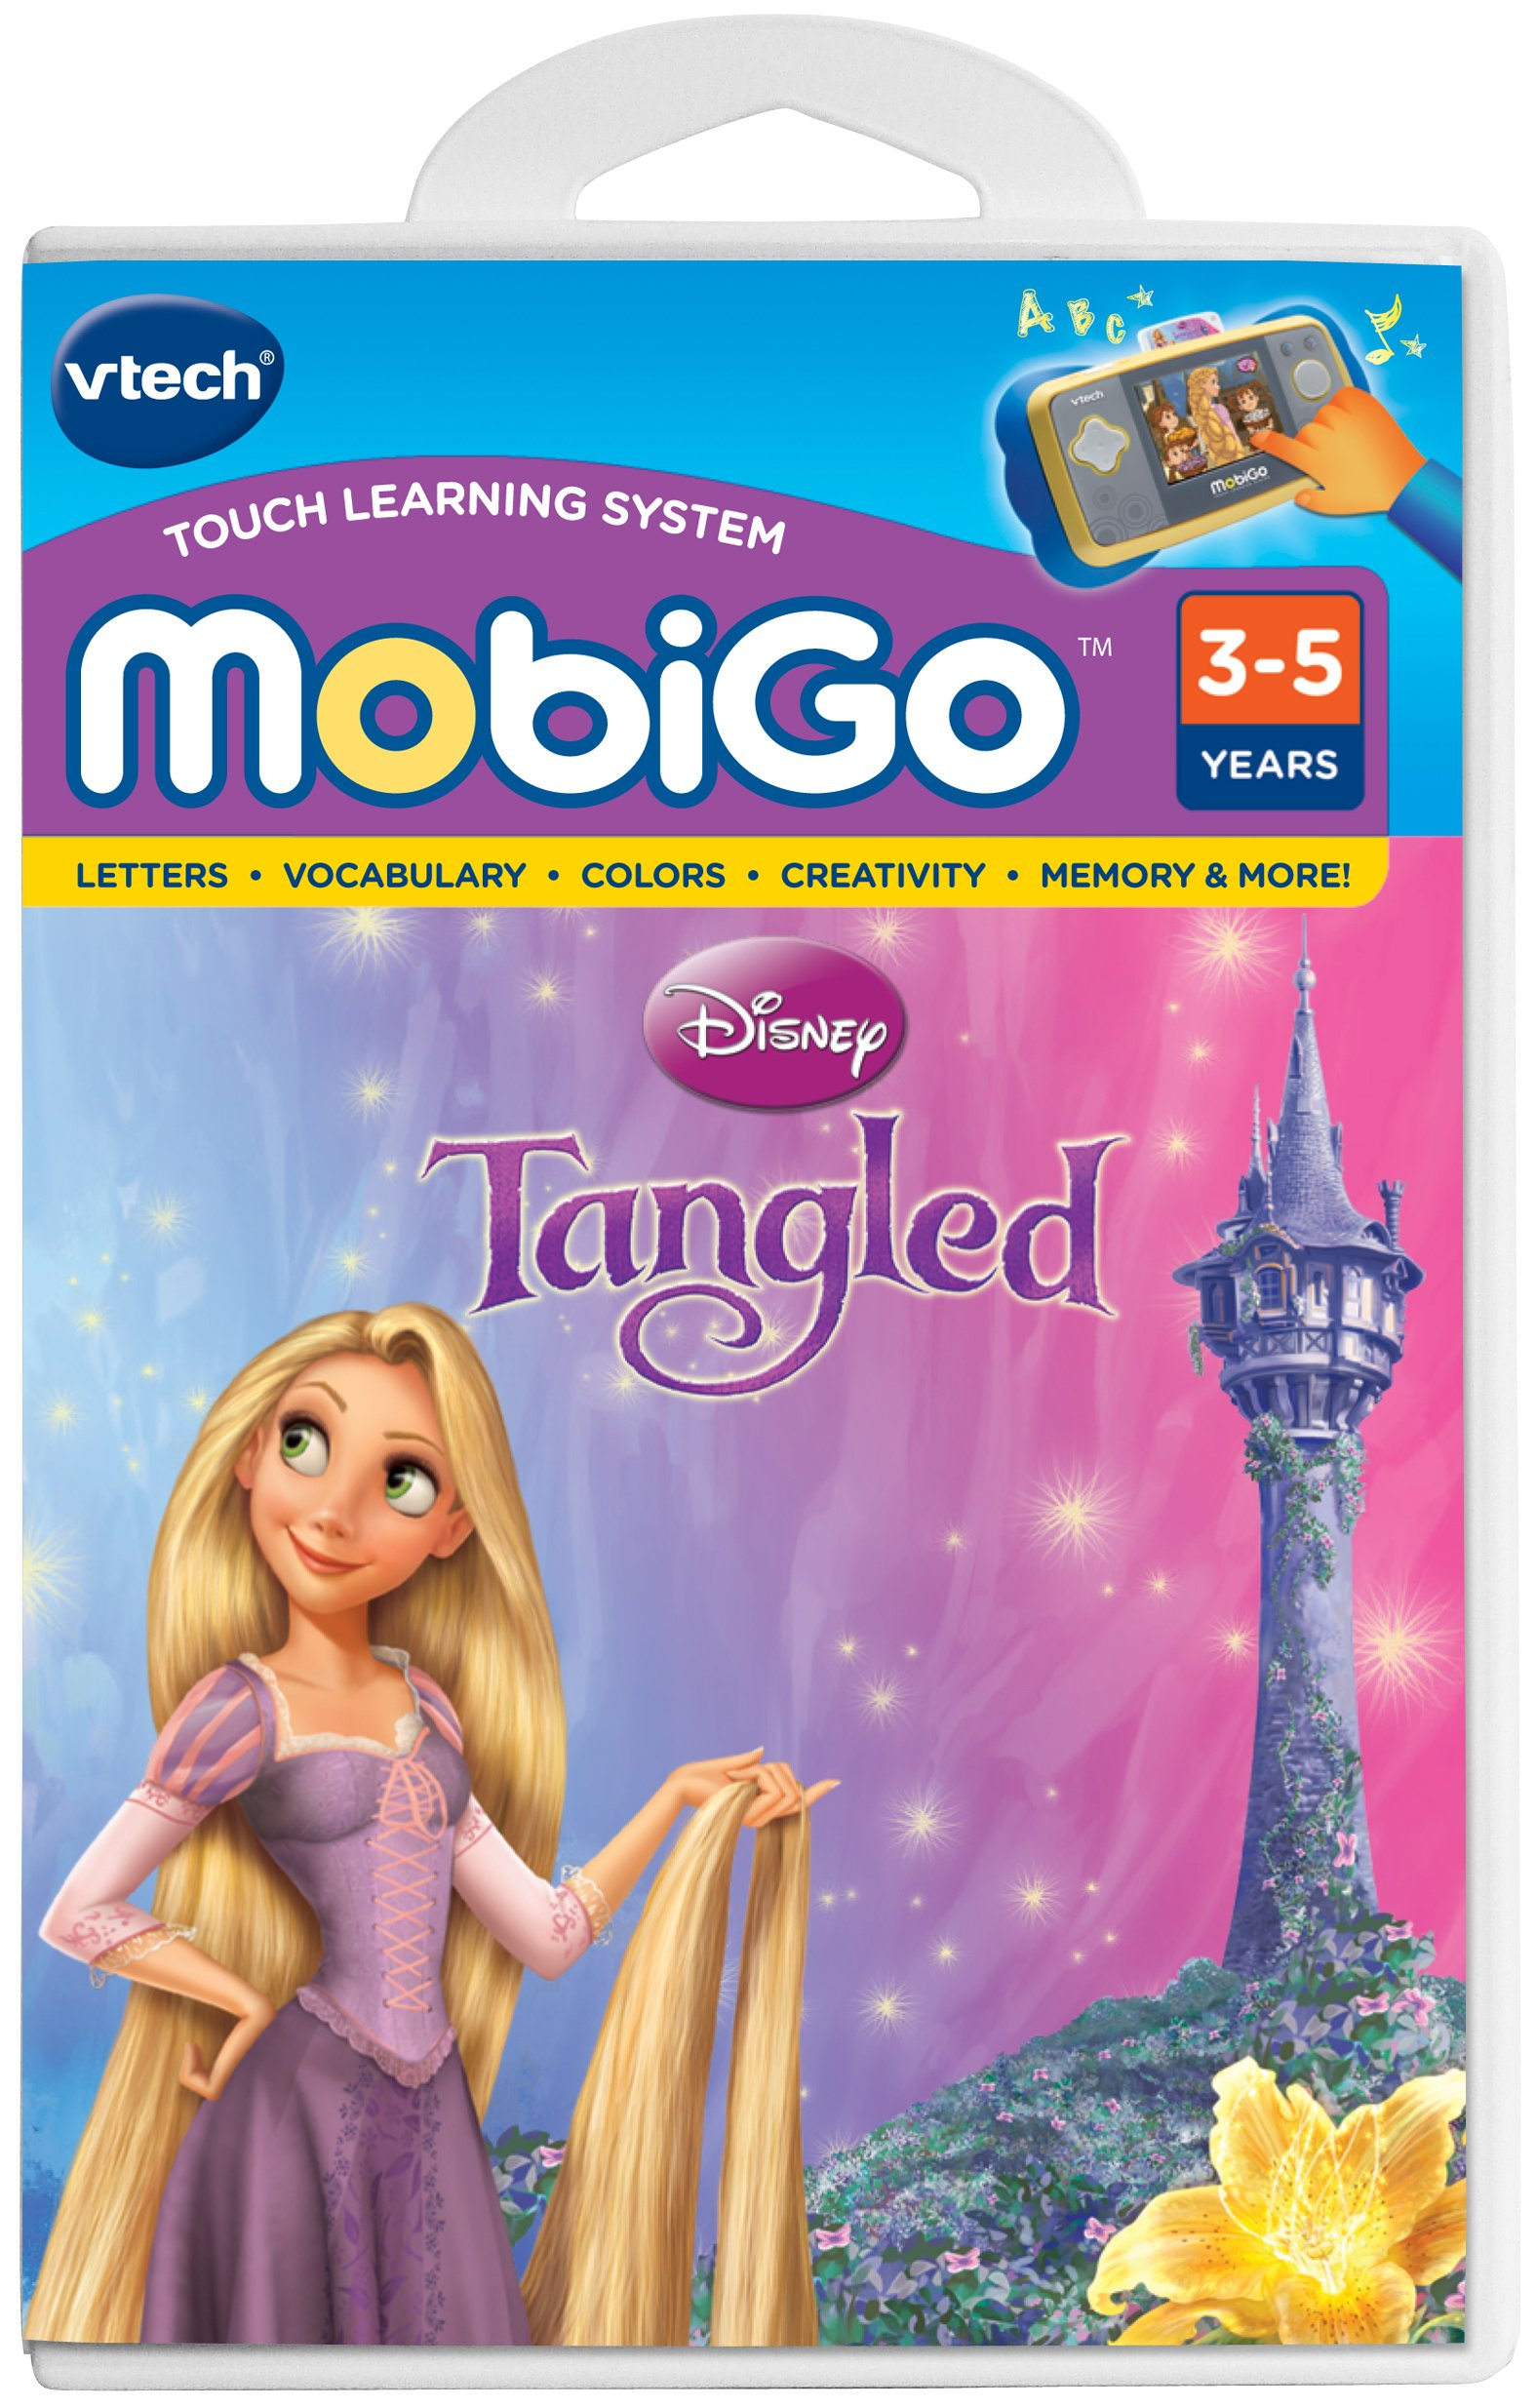 VTech - MobiGo Software - Disney's Tangled by VTech (Image #1)